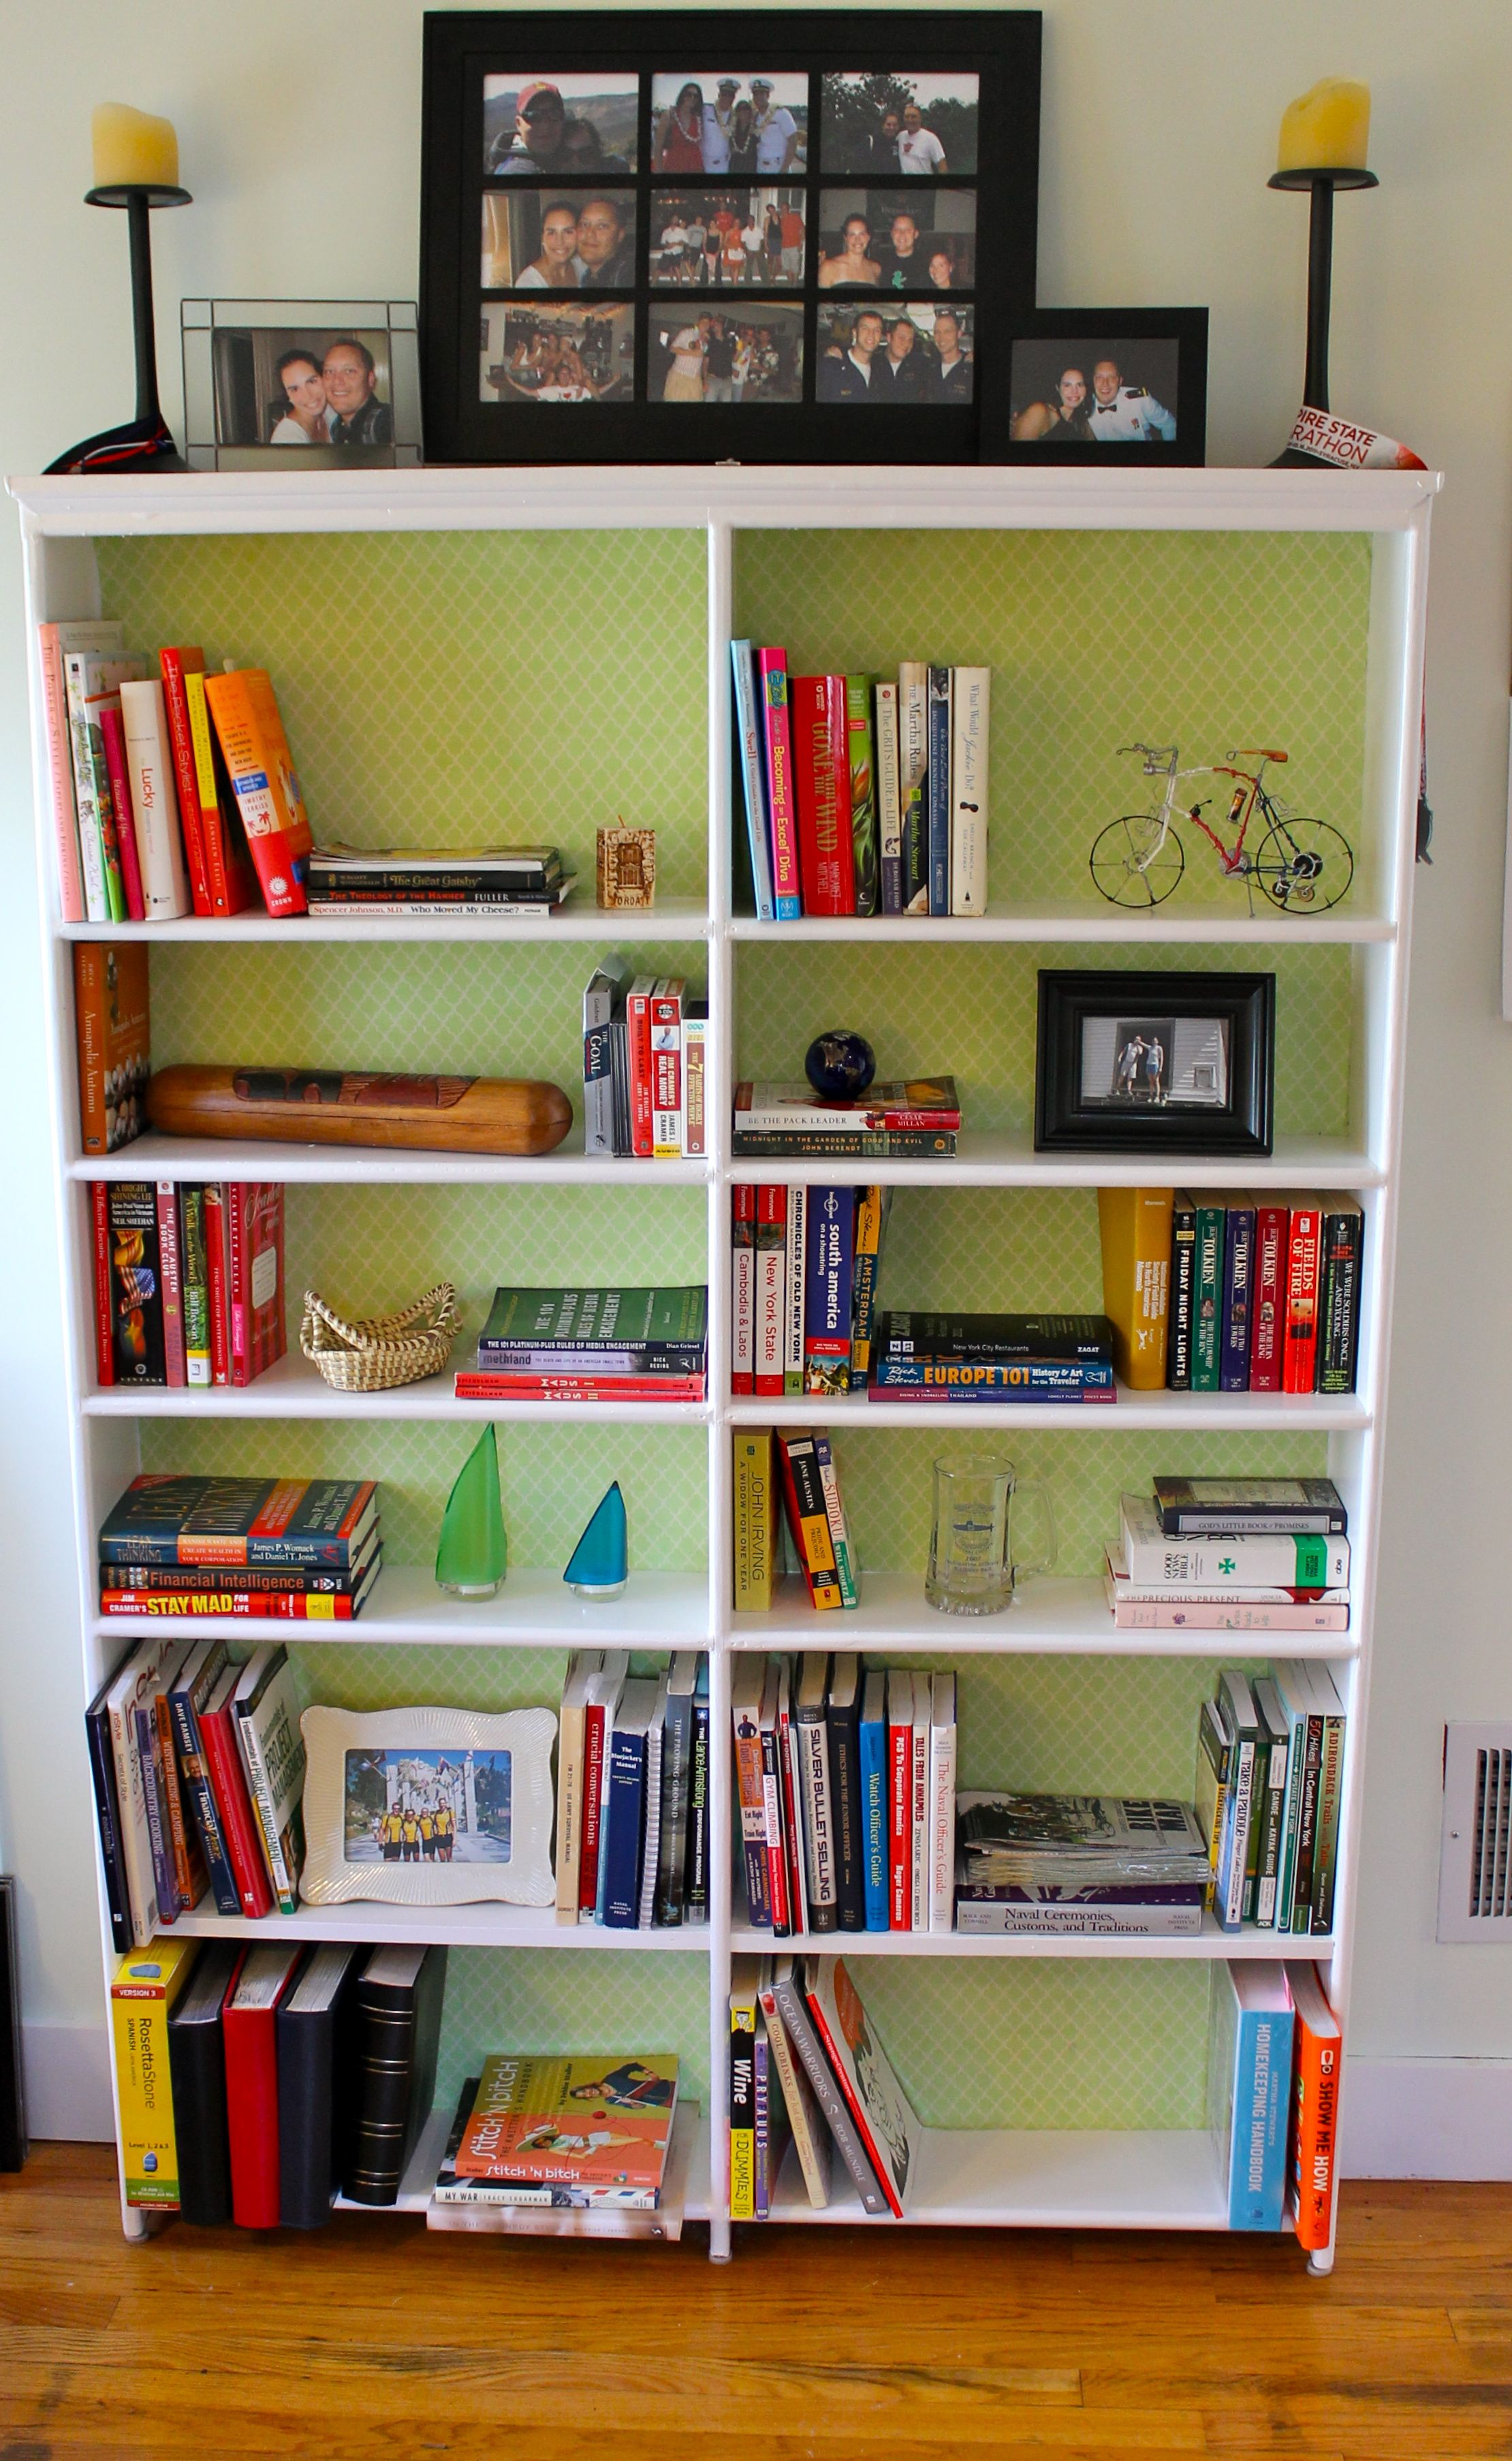 Bookshelf after - How to Get Free House Plants